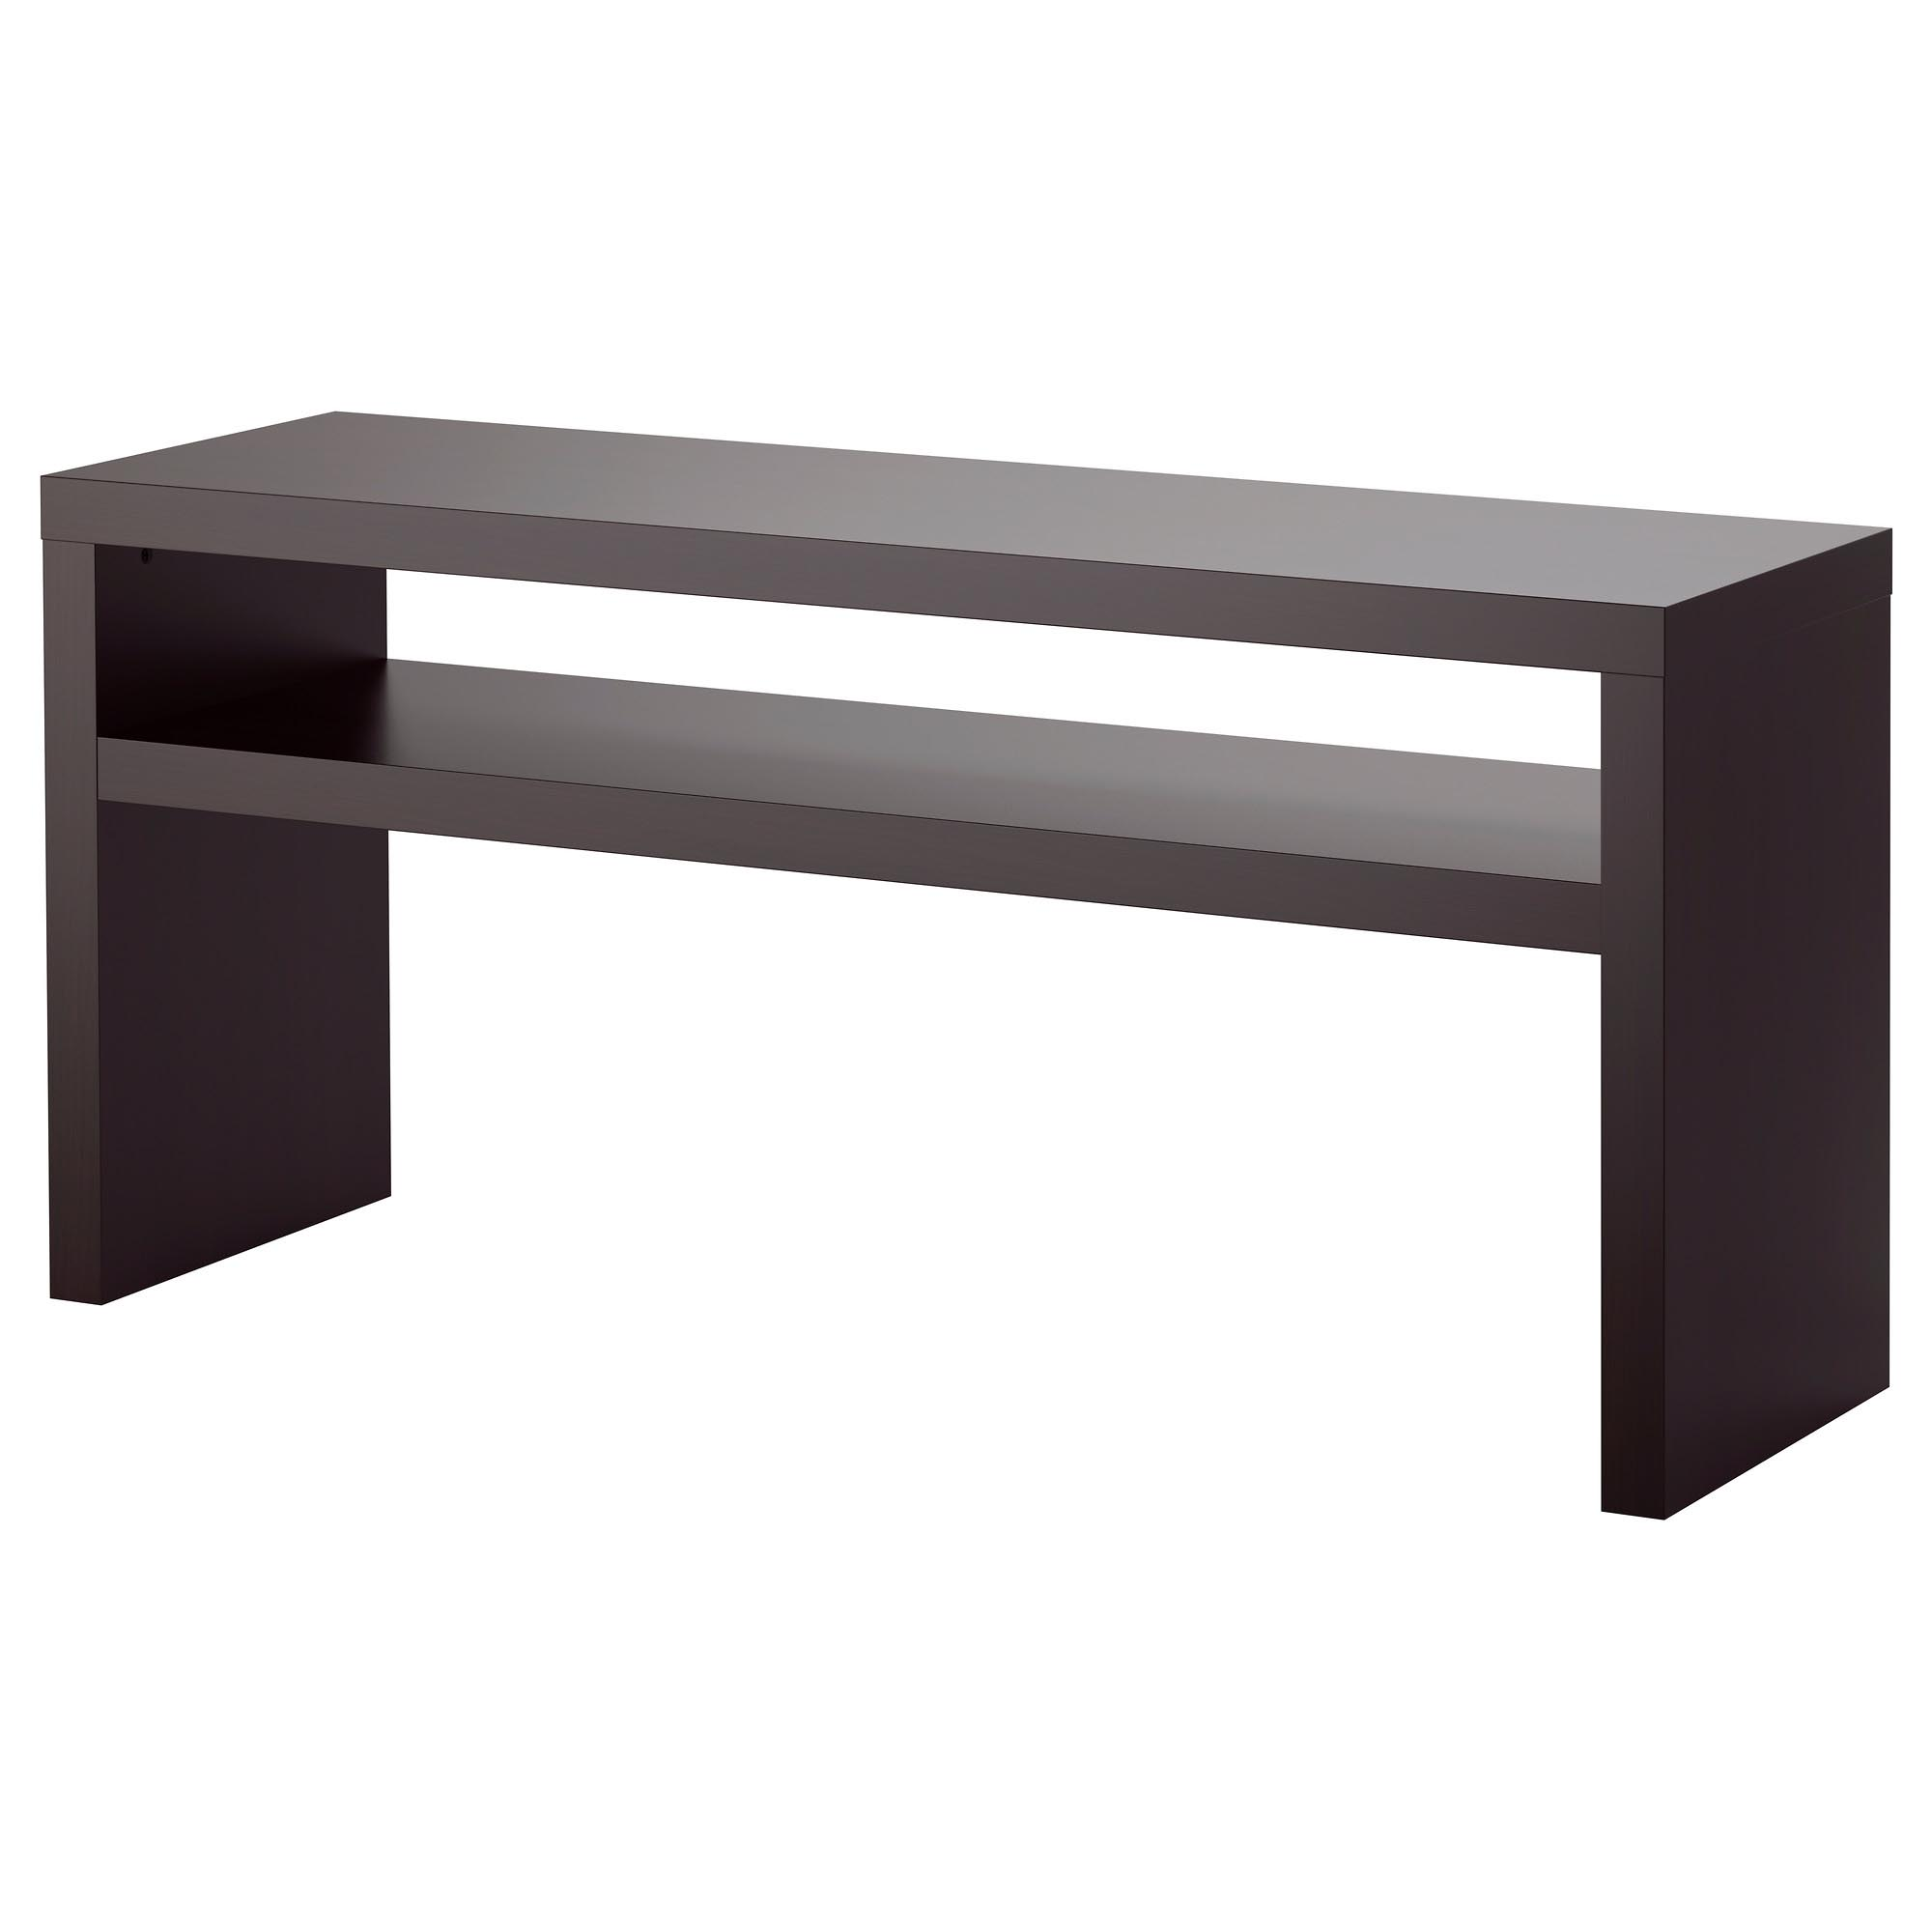 - Skinny Coffee Table IKEA Coffee Table Design Ideas